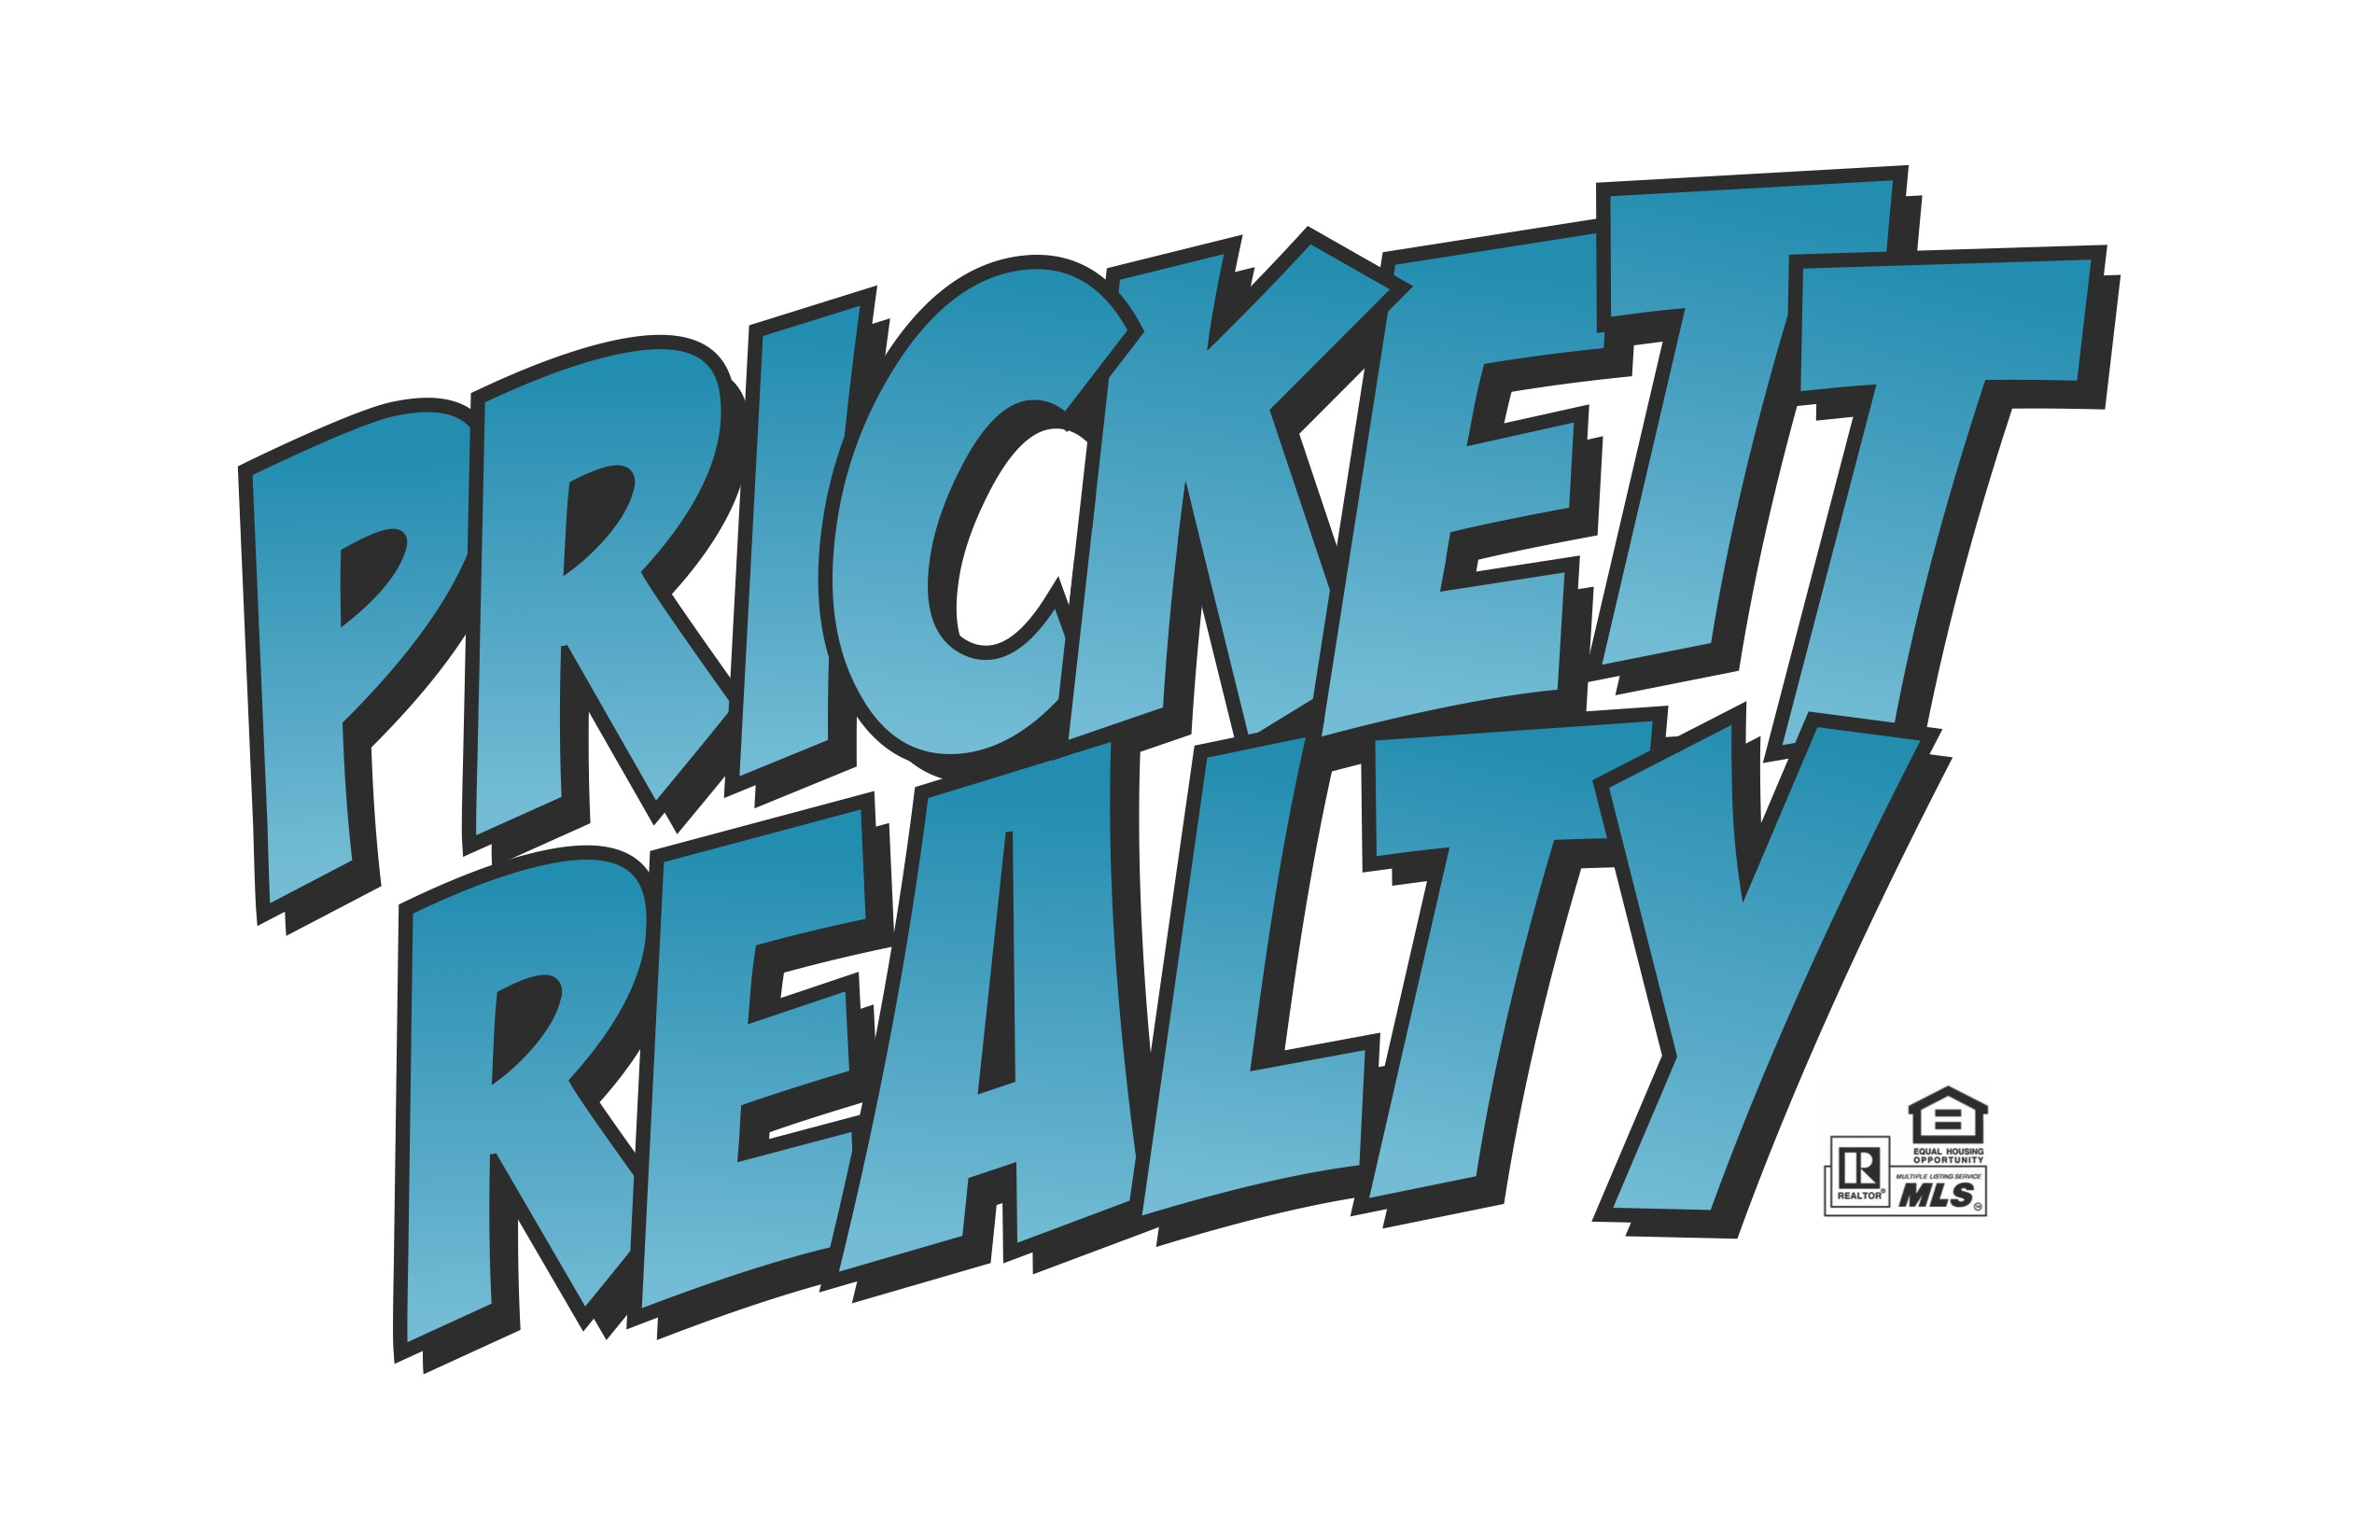 Prickett Realty New